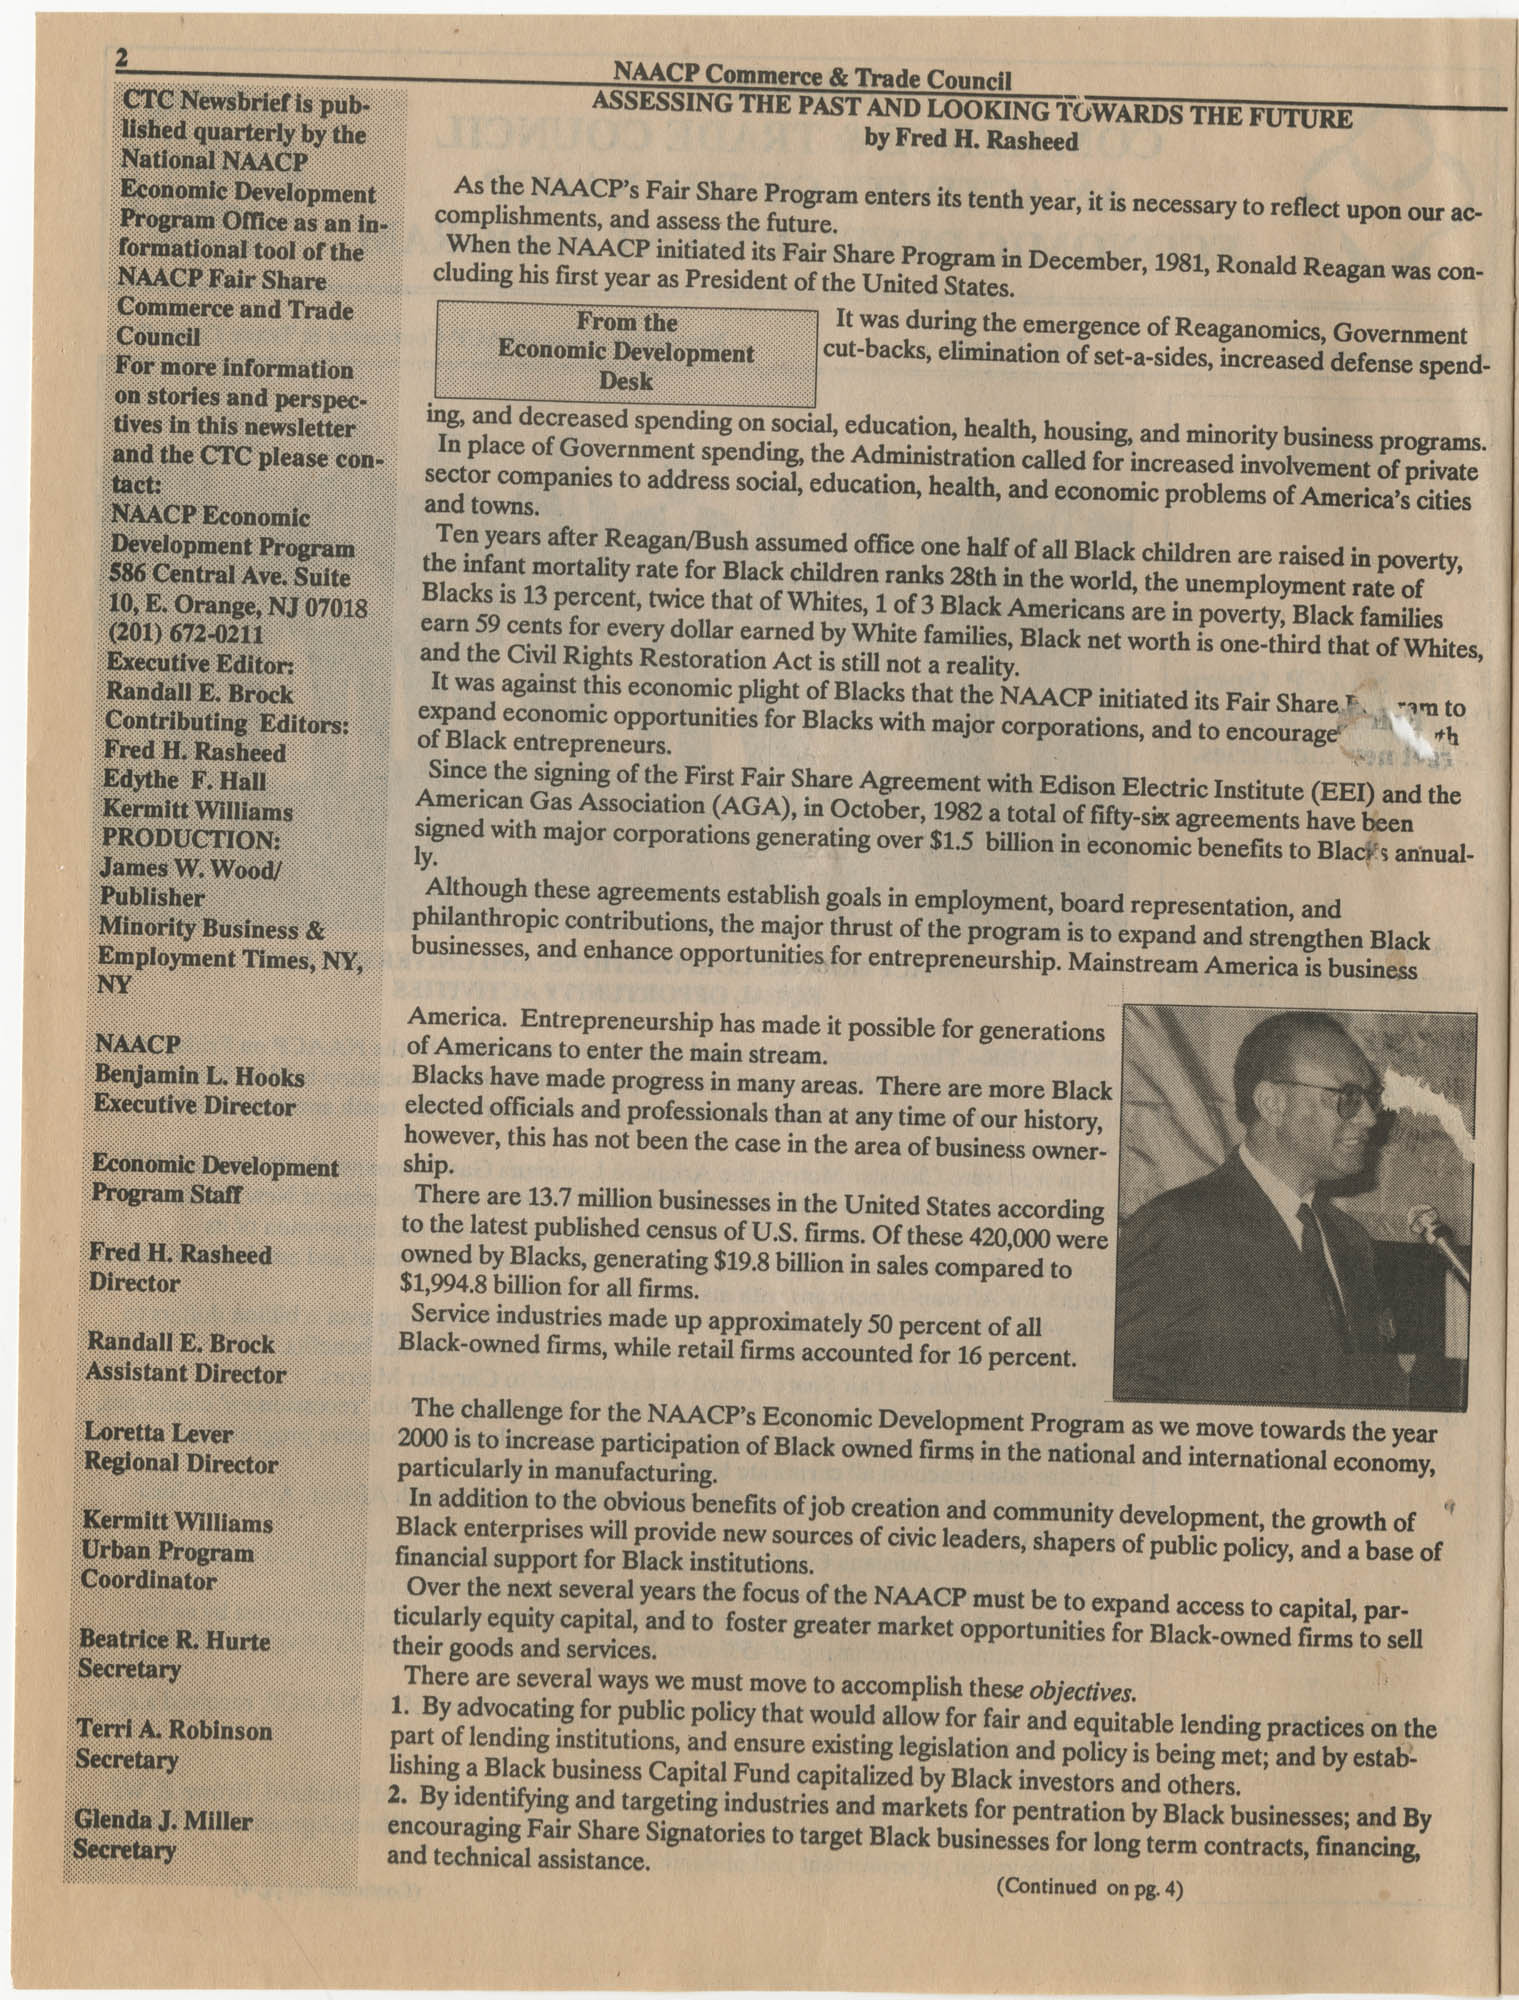 NAACP Commerce and Trade Council, July/September 1991, Vol. 1, Issue 1, Page 2